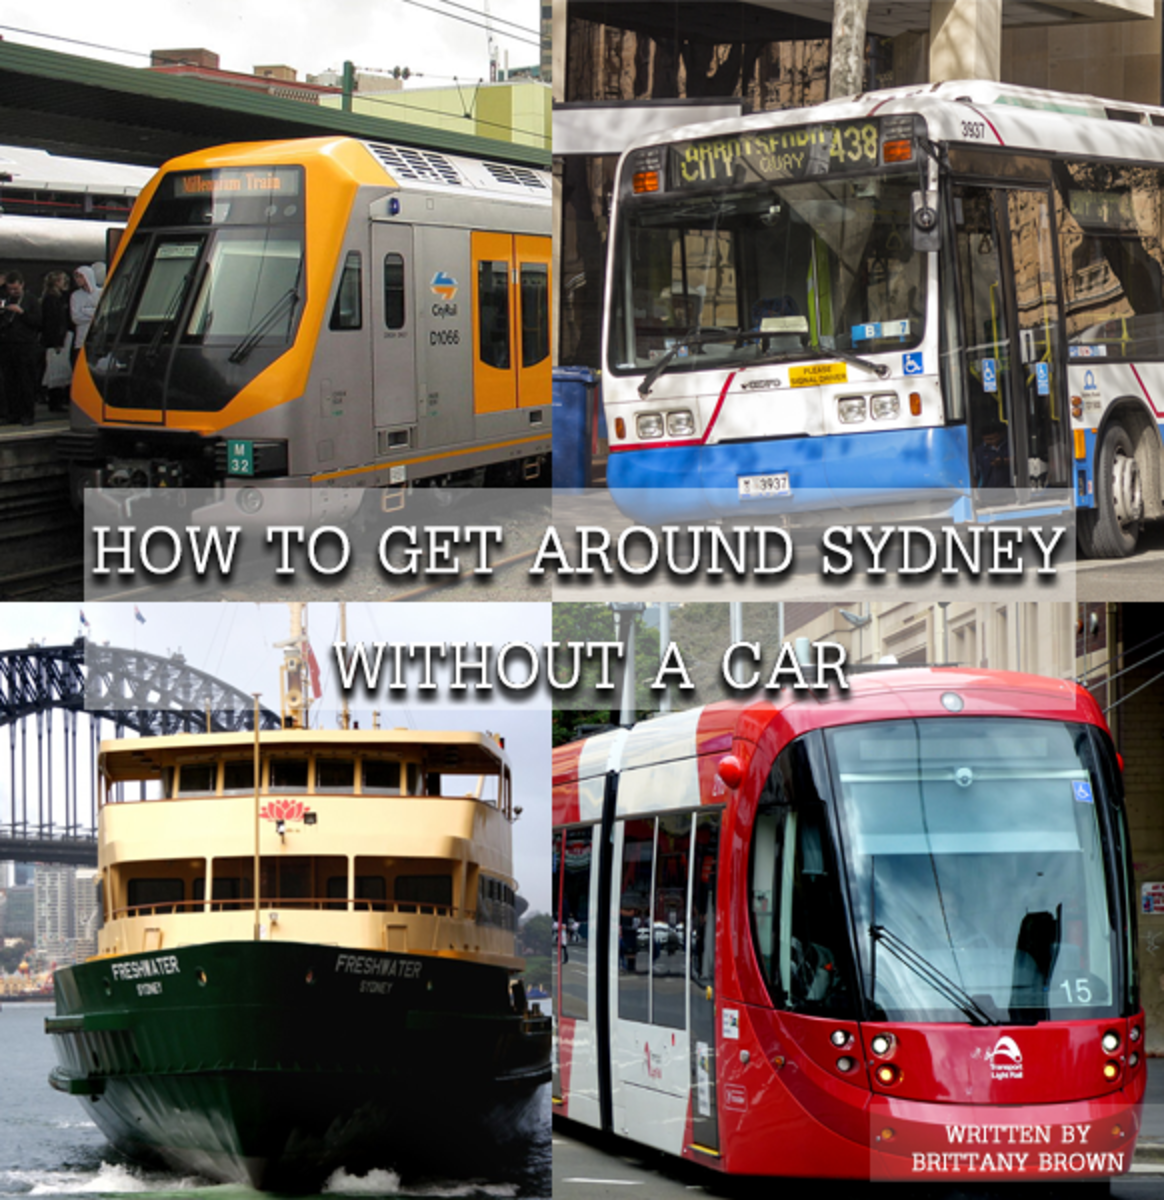 How to Get Around Sydney Without a Car